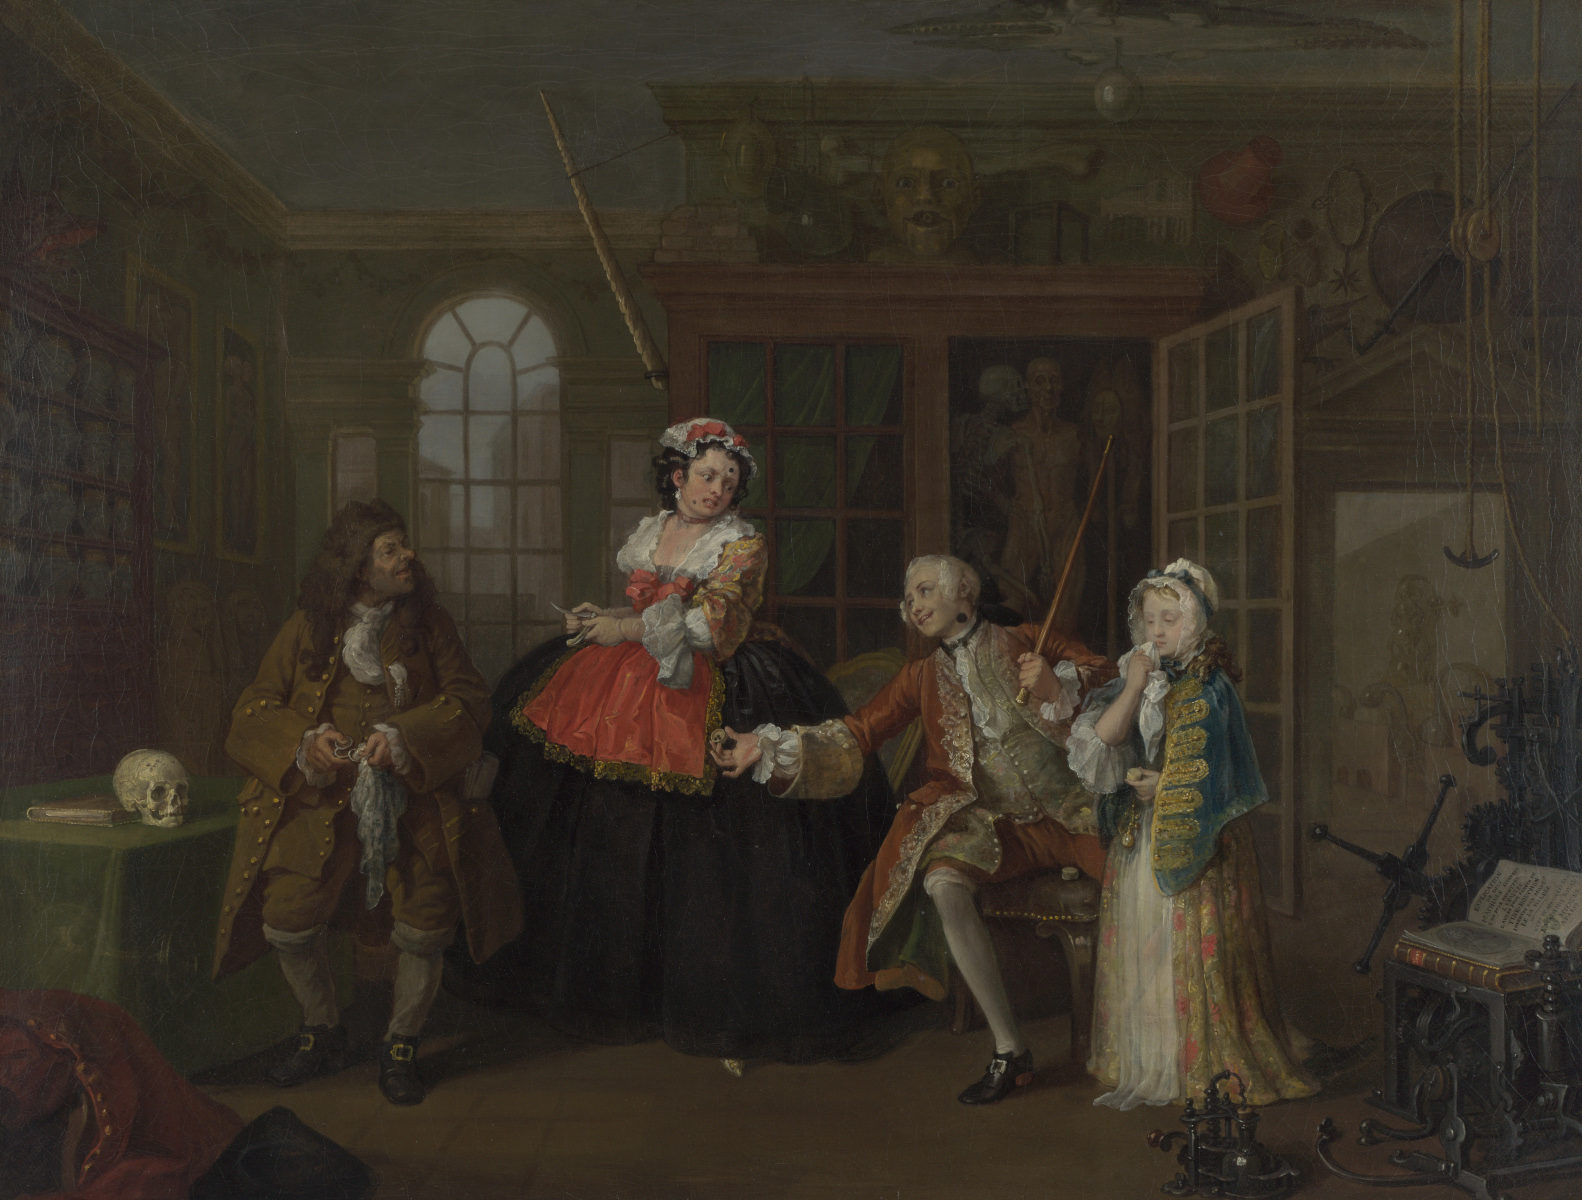 La visita dal ciarlatano di William Hogarth